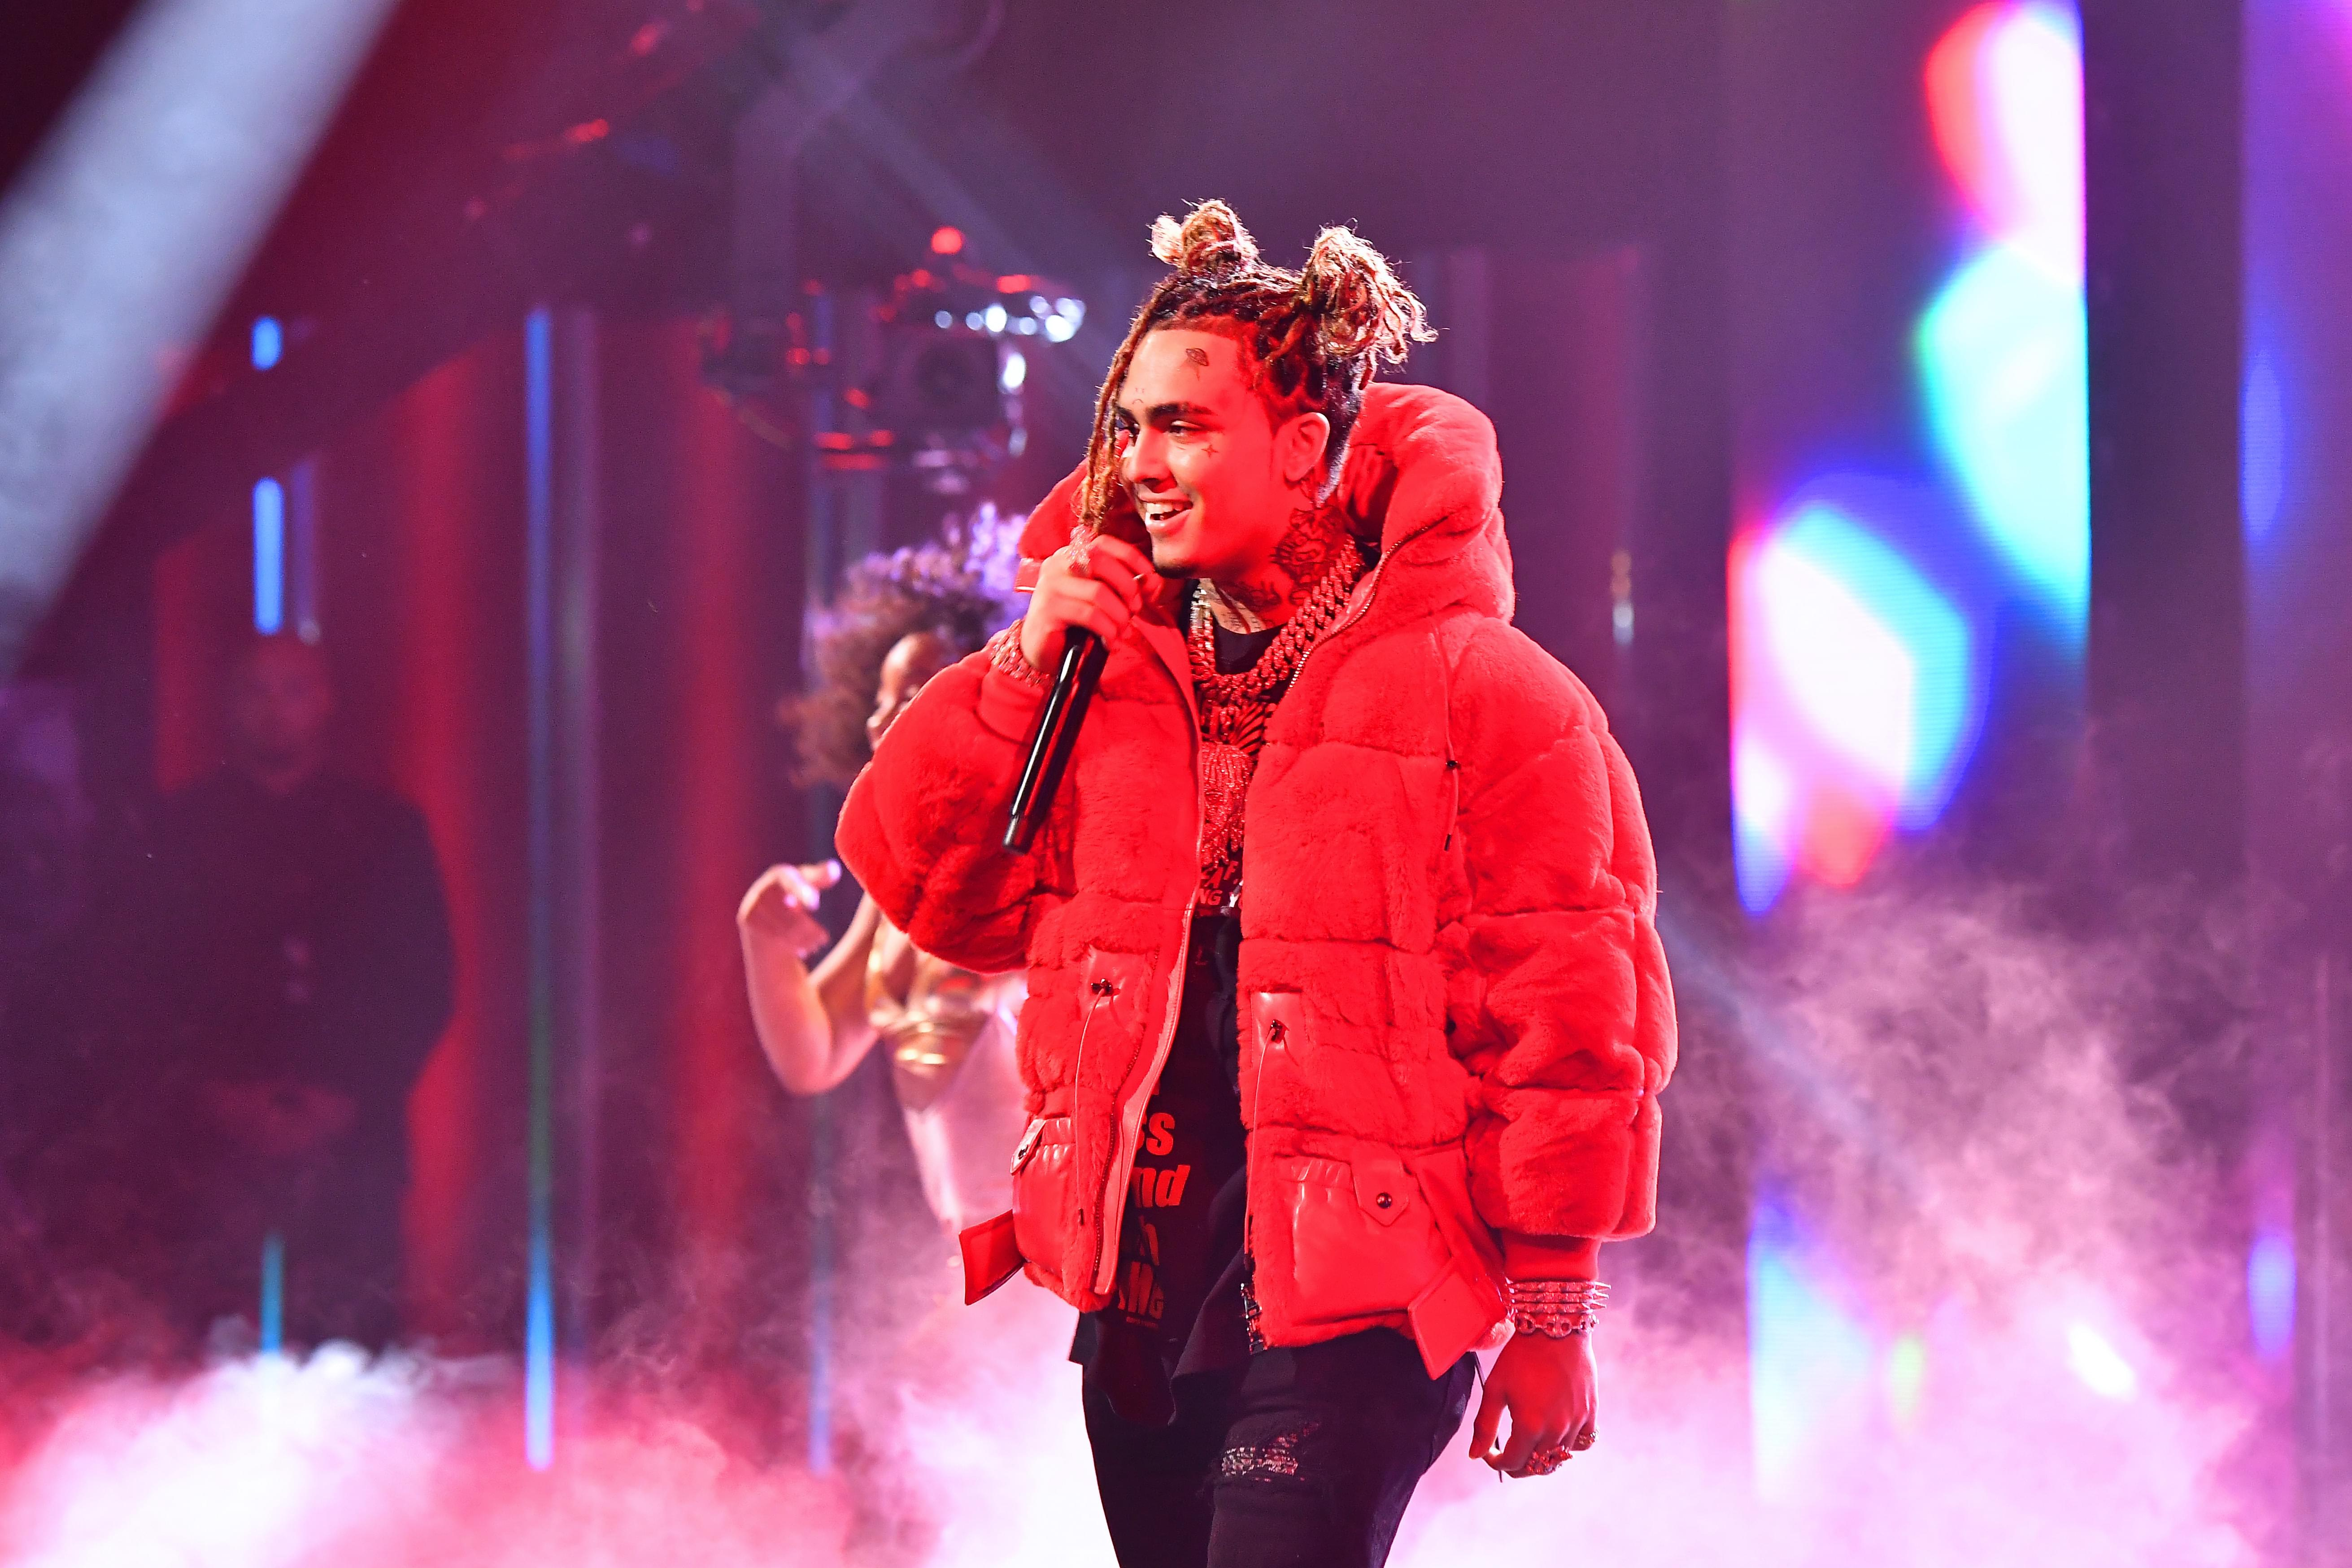 Lil Pump Throws A Pizza Party On Skid Row